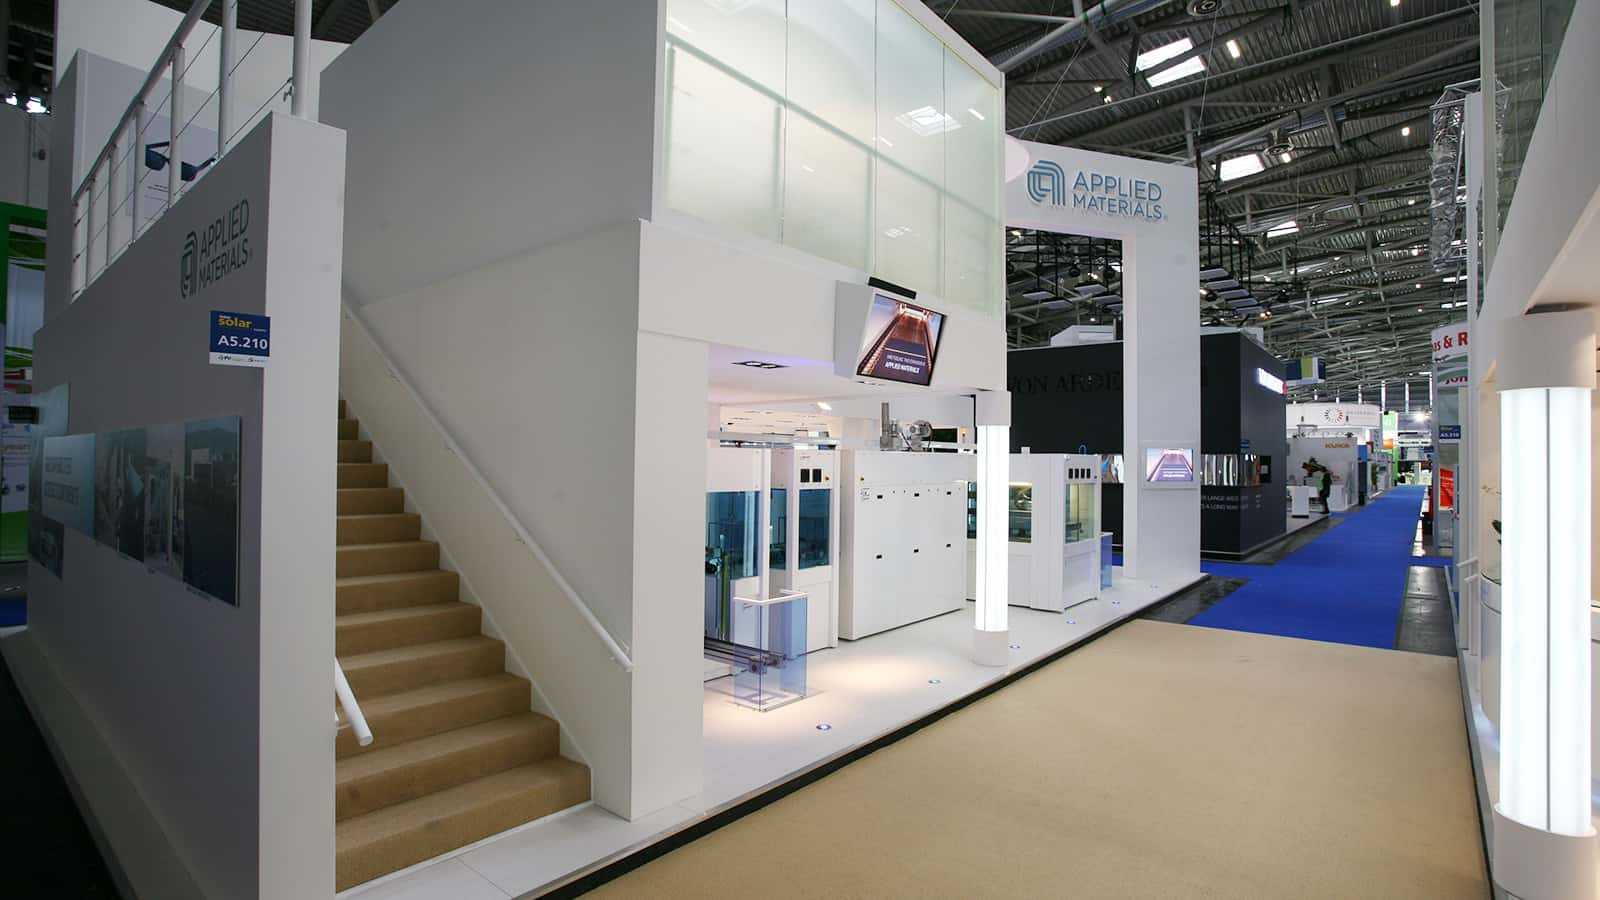 The stairs to the second floor of the A look at the first floor from the Applied Materials Intersolar trade show exhibit in 2011.